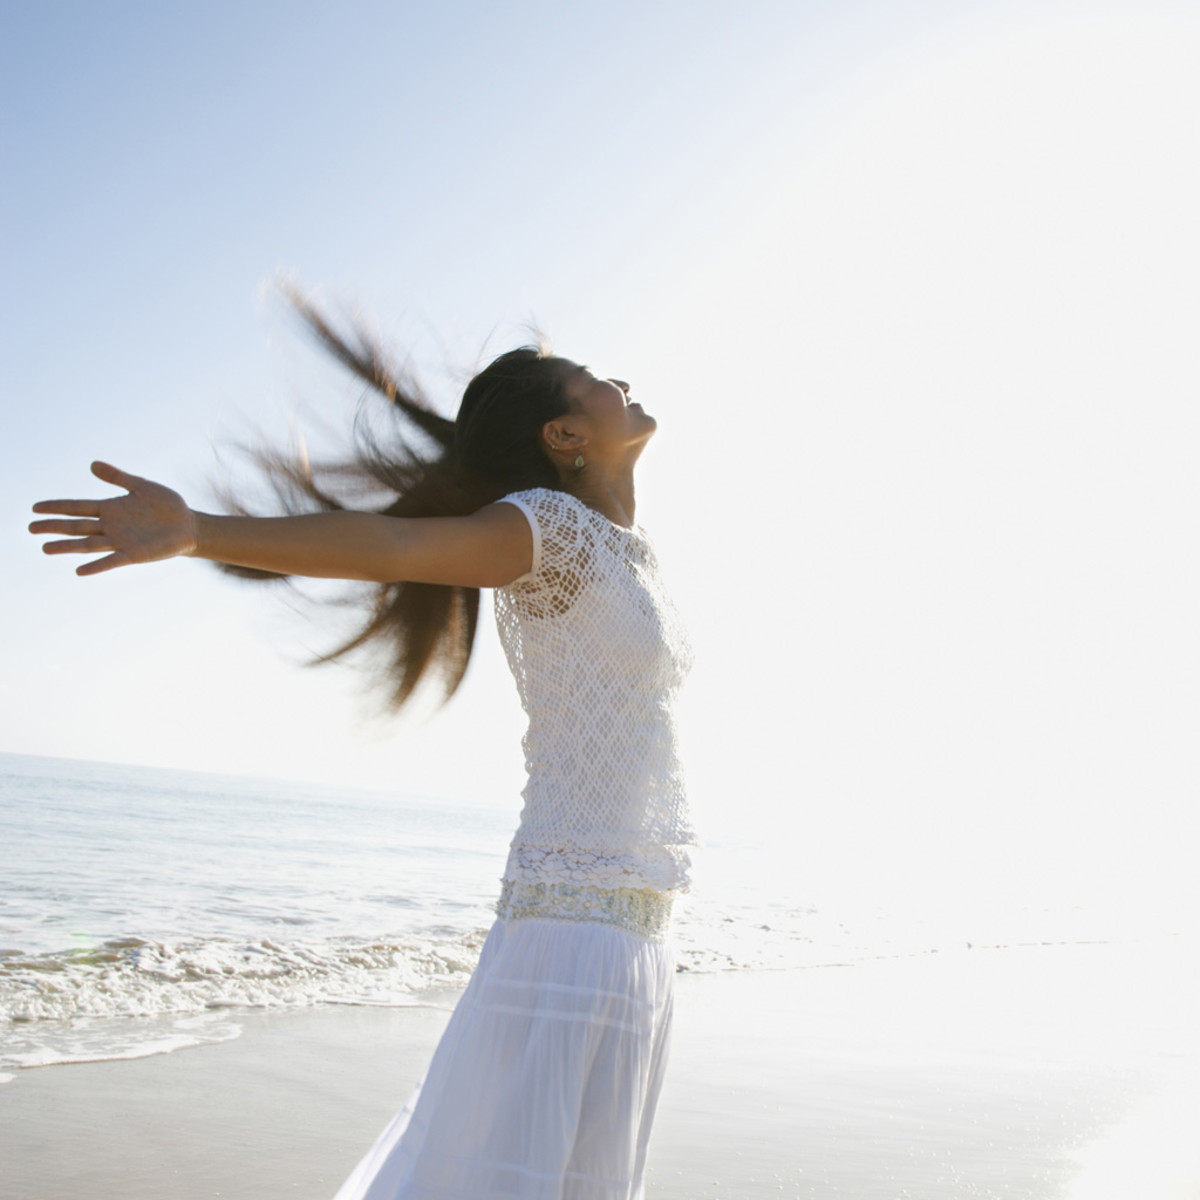 Let the Light In - Energy Healing Can Heal Your Life